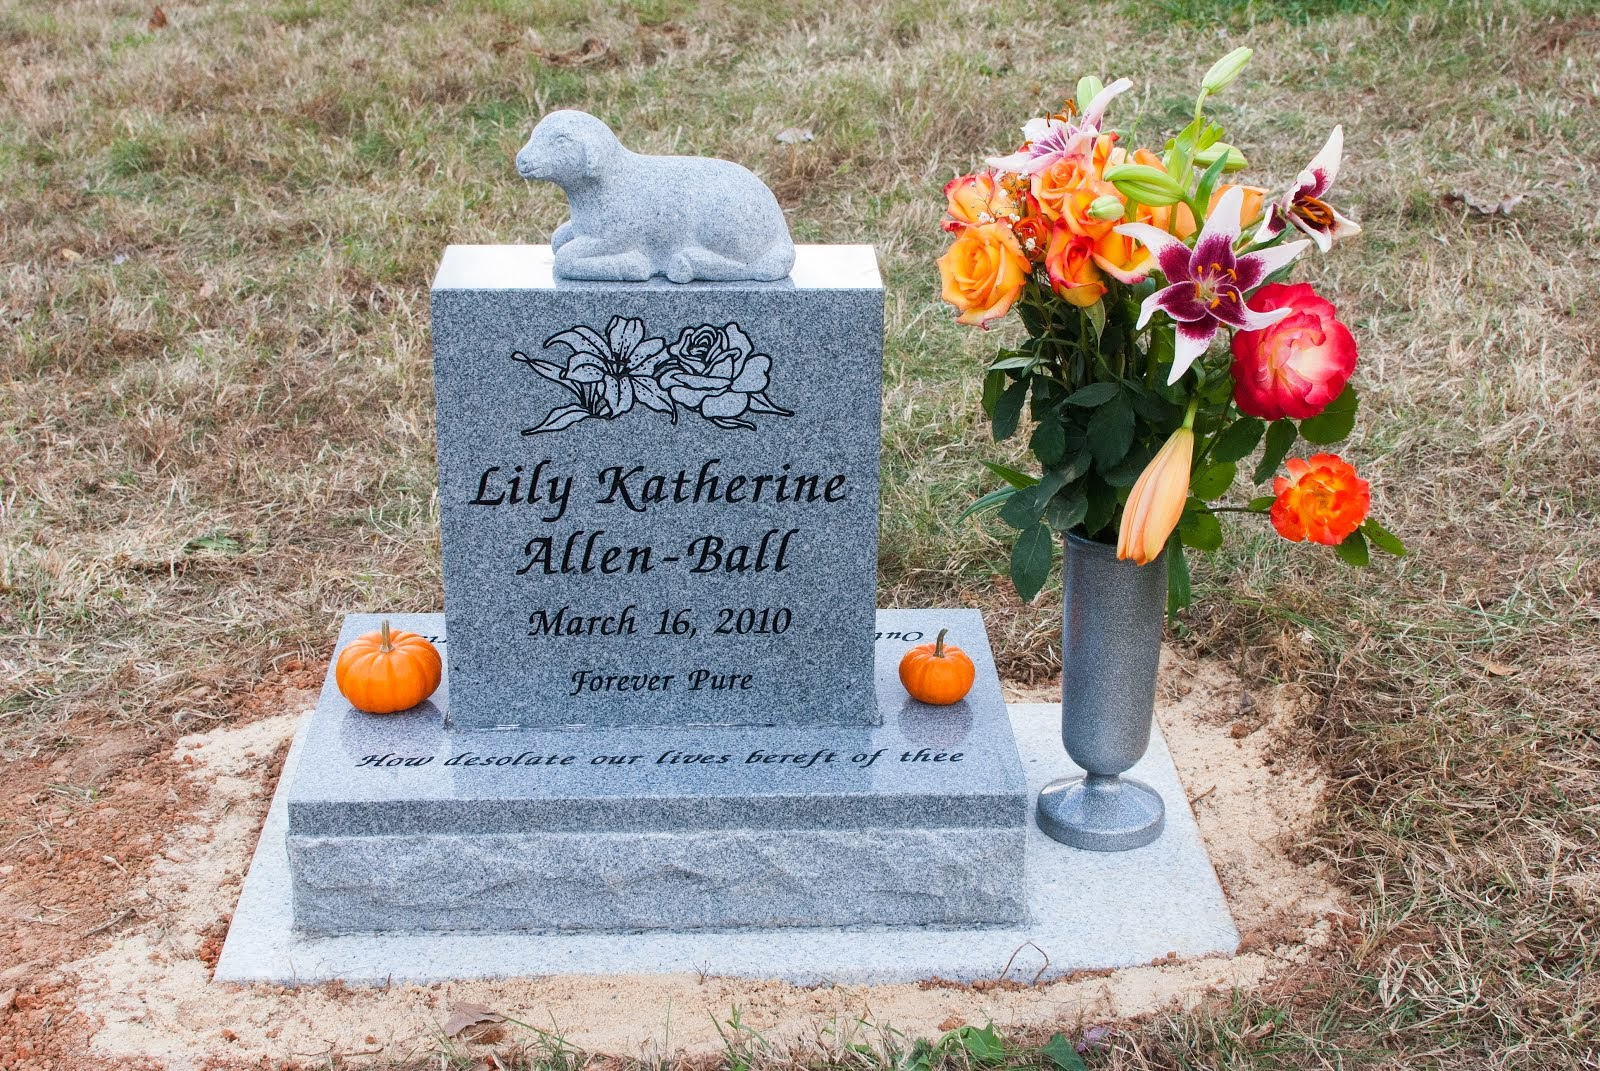 Lily's Memorial Stone in Crozet, Virginia